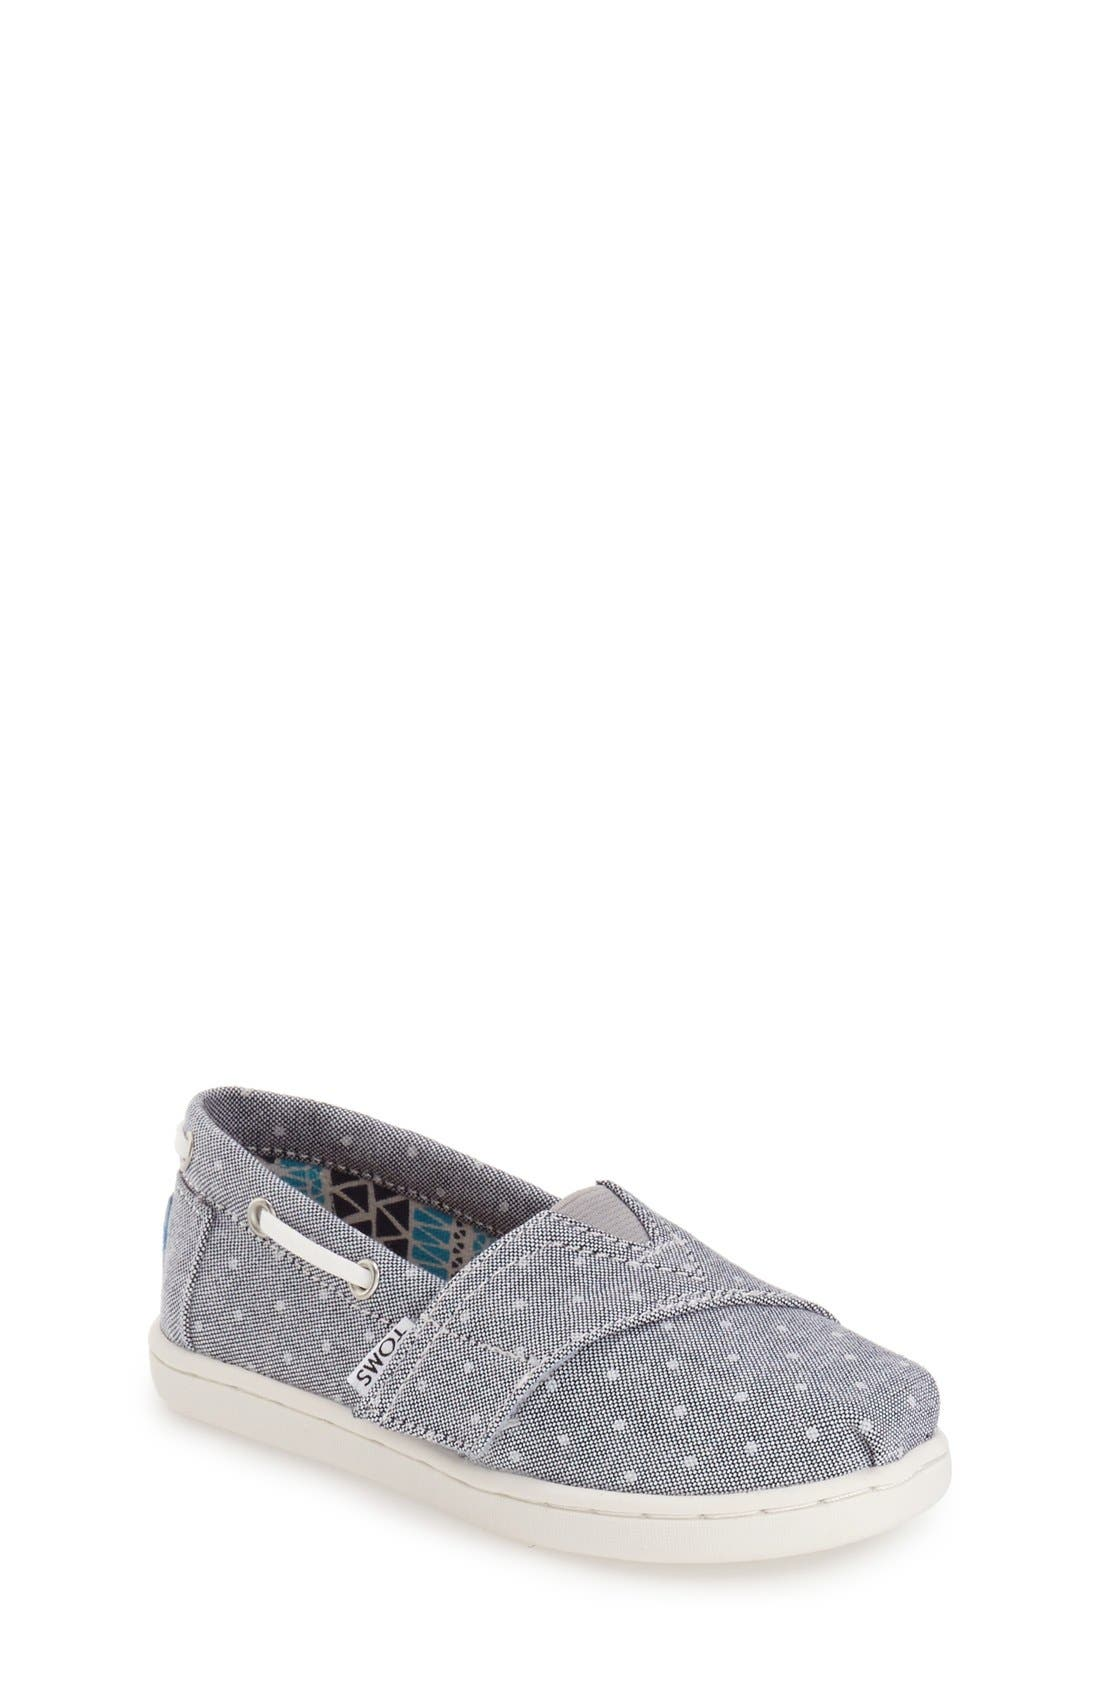 Alternate Image 1 Selected - TOMS 'Bimini - Tiny' Slip-On (Walker & Toddler)